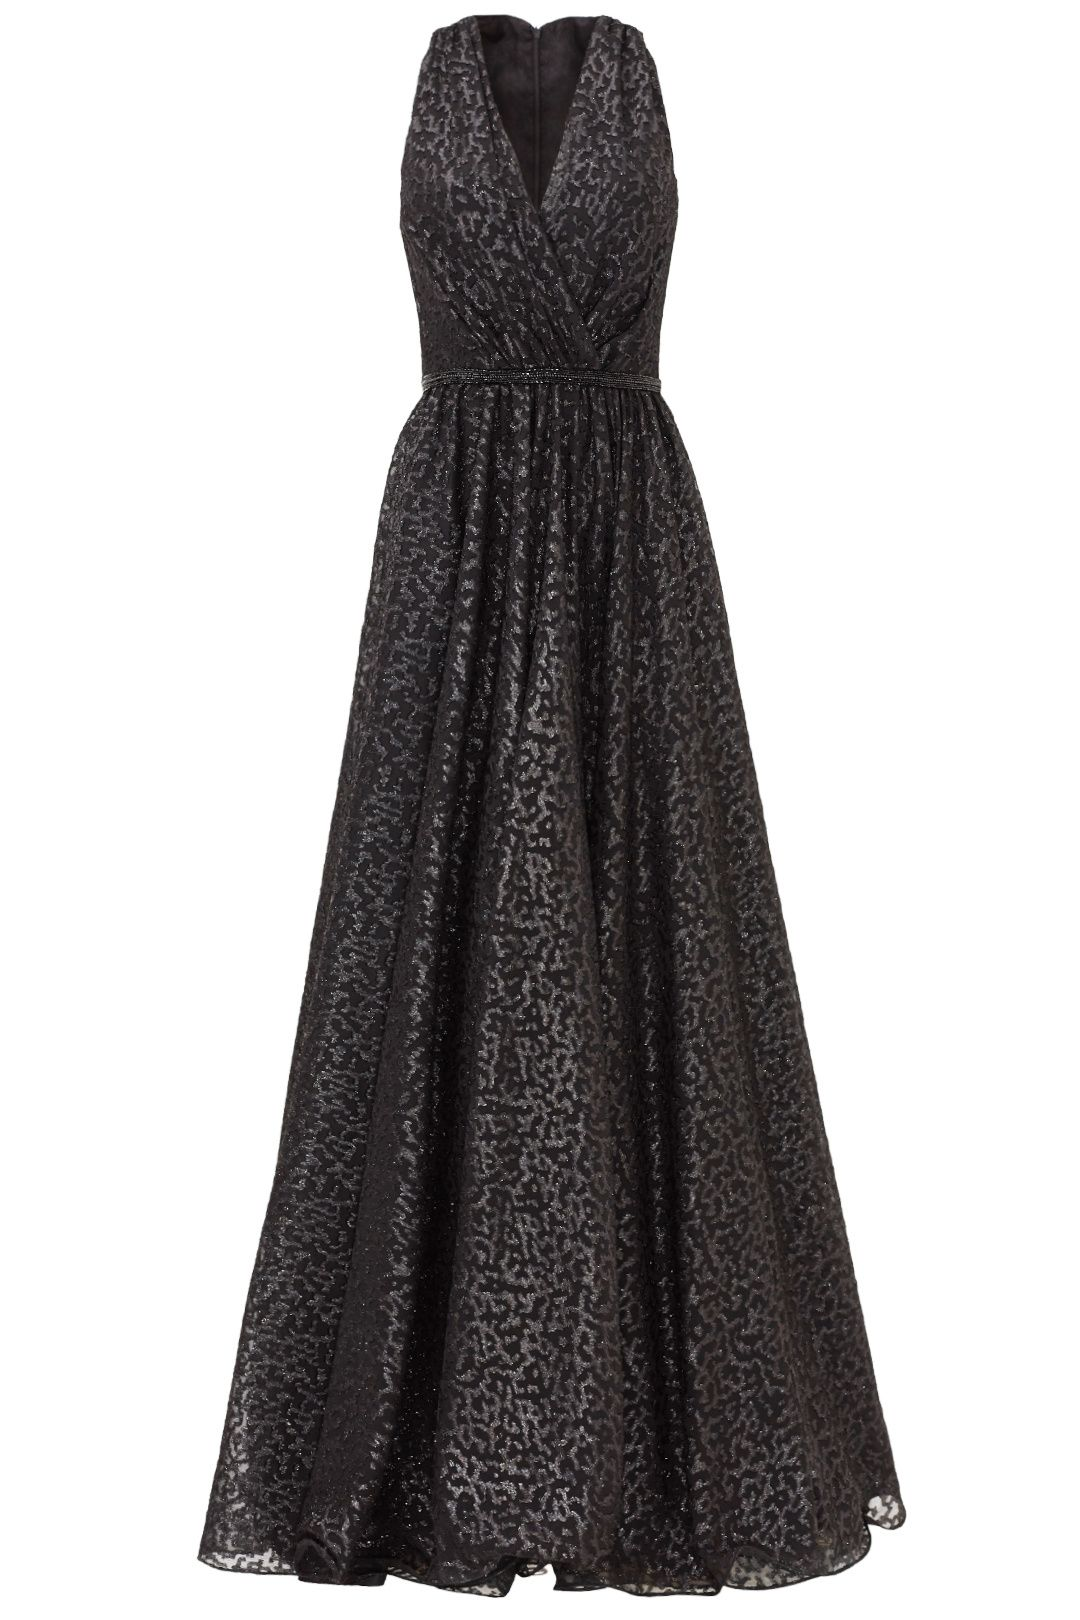 Rent Cloe Gown by David Meister for $100 only at Rent the Runway ...